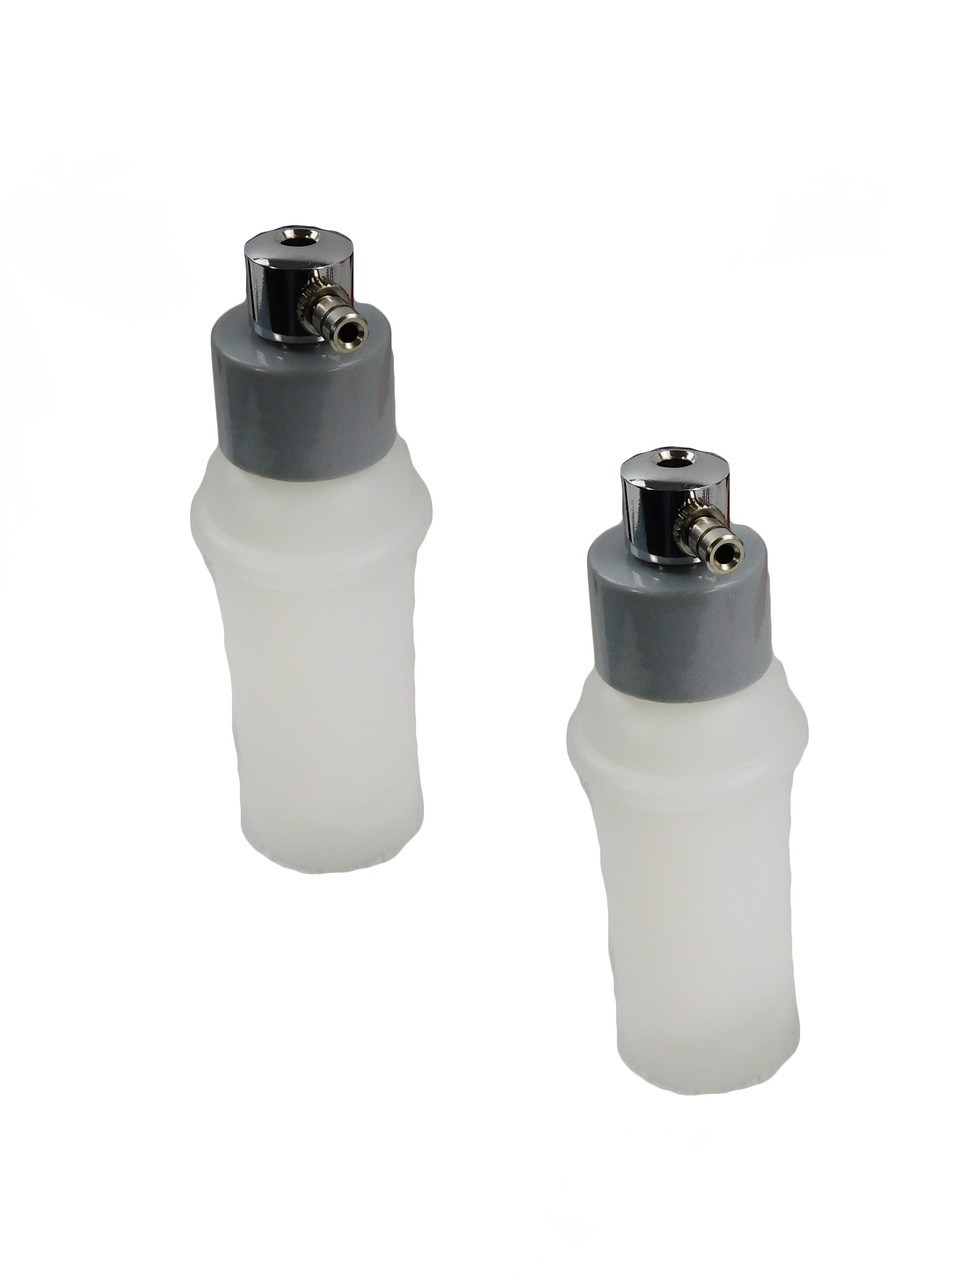 2 Spray Bottle Diffusers for Multifunction Machine